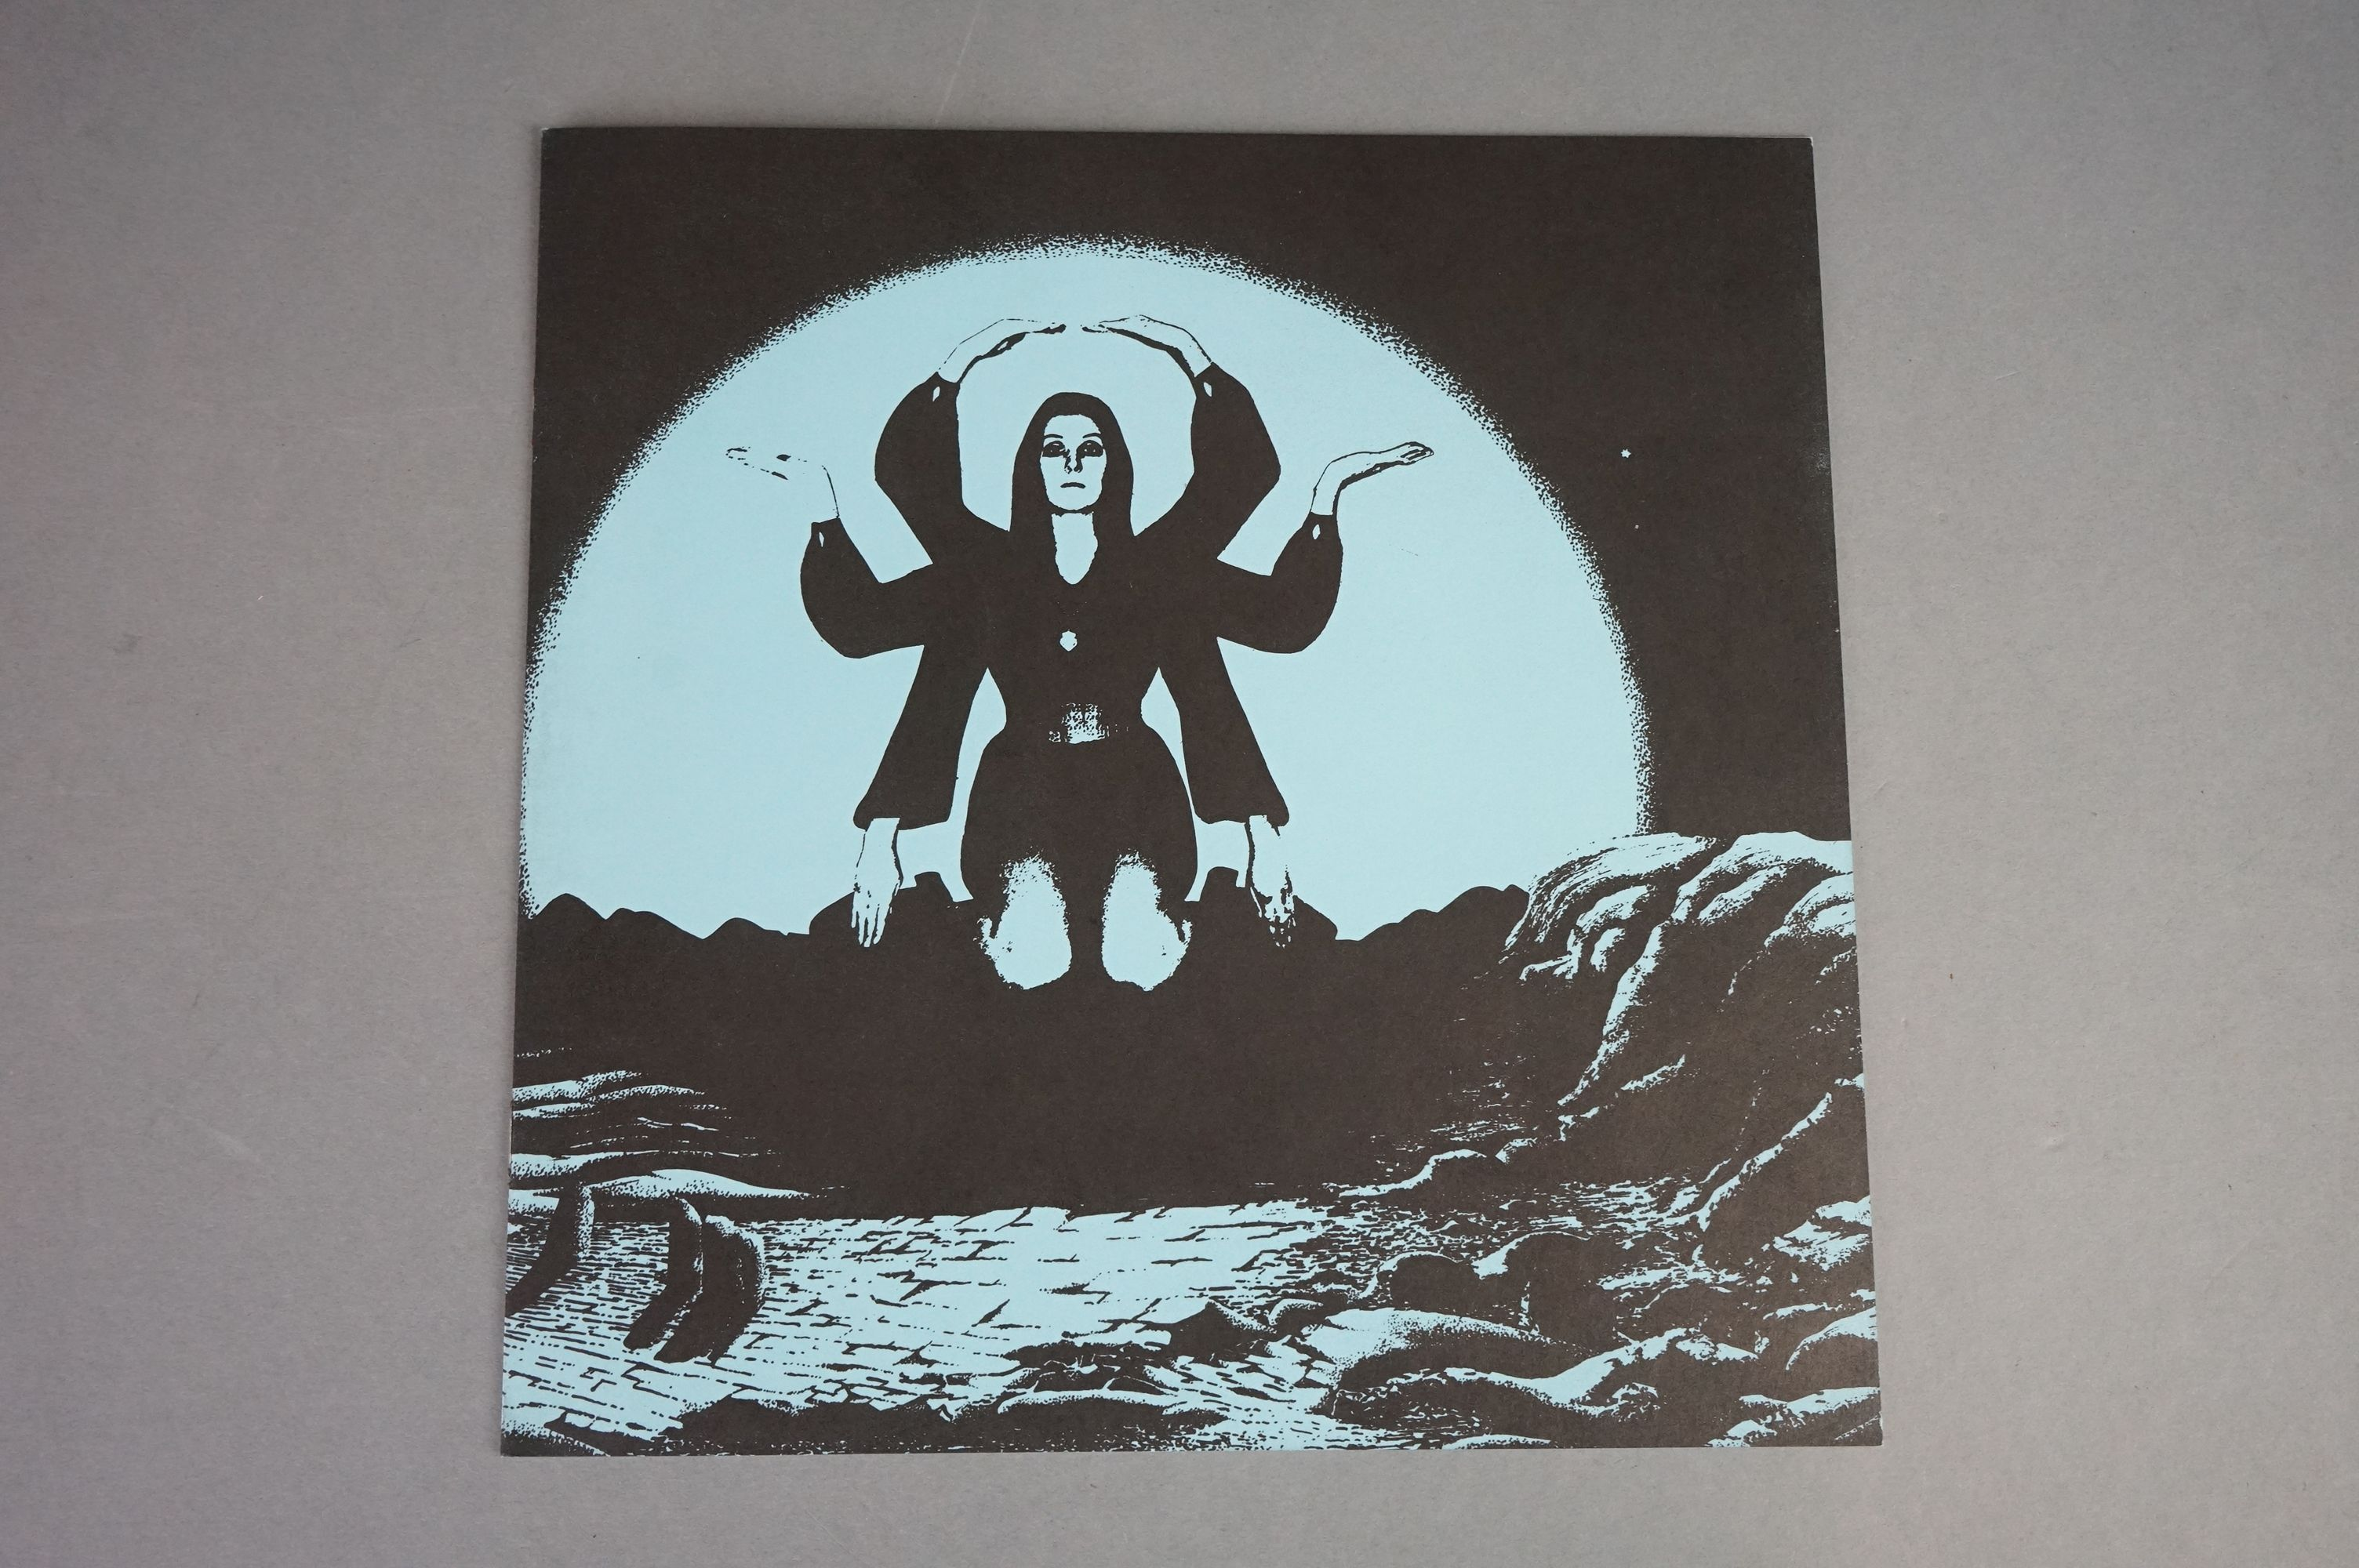 Vinyl - Lightyears Away / Thundermother ?? Astral Navigations (HG 114) numbered Ltd Edition - Image 10 of 12